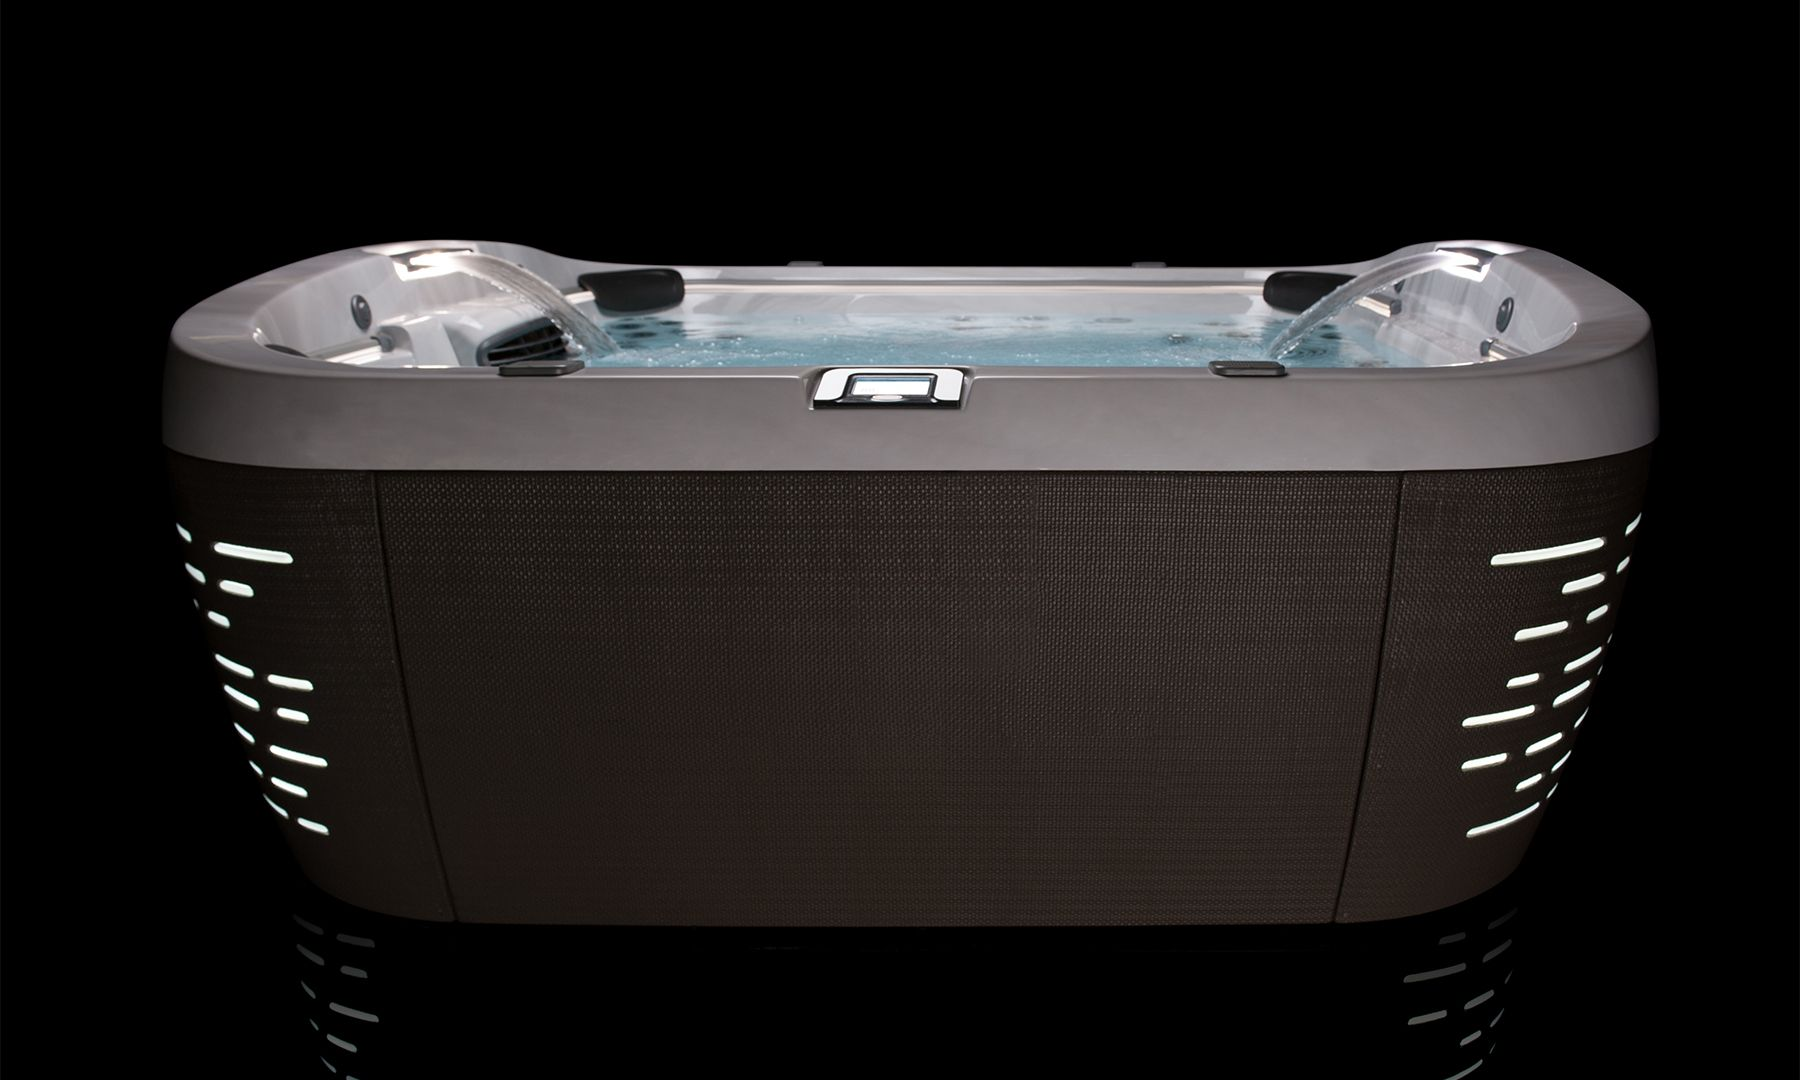 High Tech Homes And Smart Home Technology Dujour Jacuzzi Tub Home Technology Jacuzzi